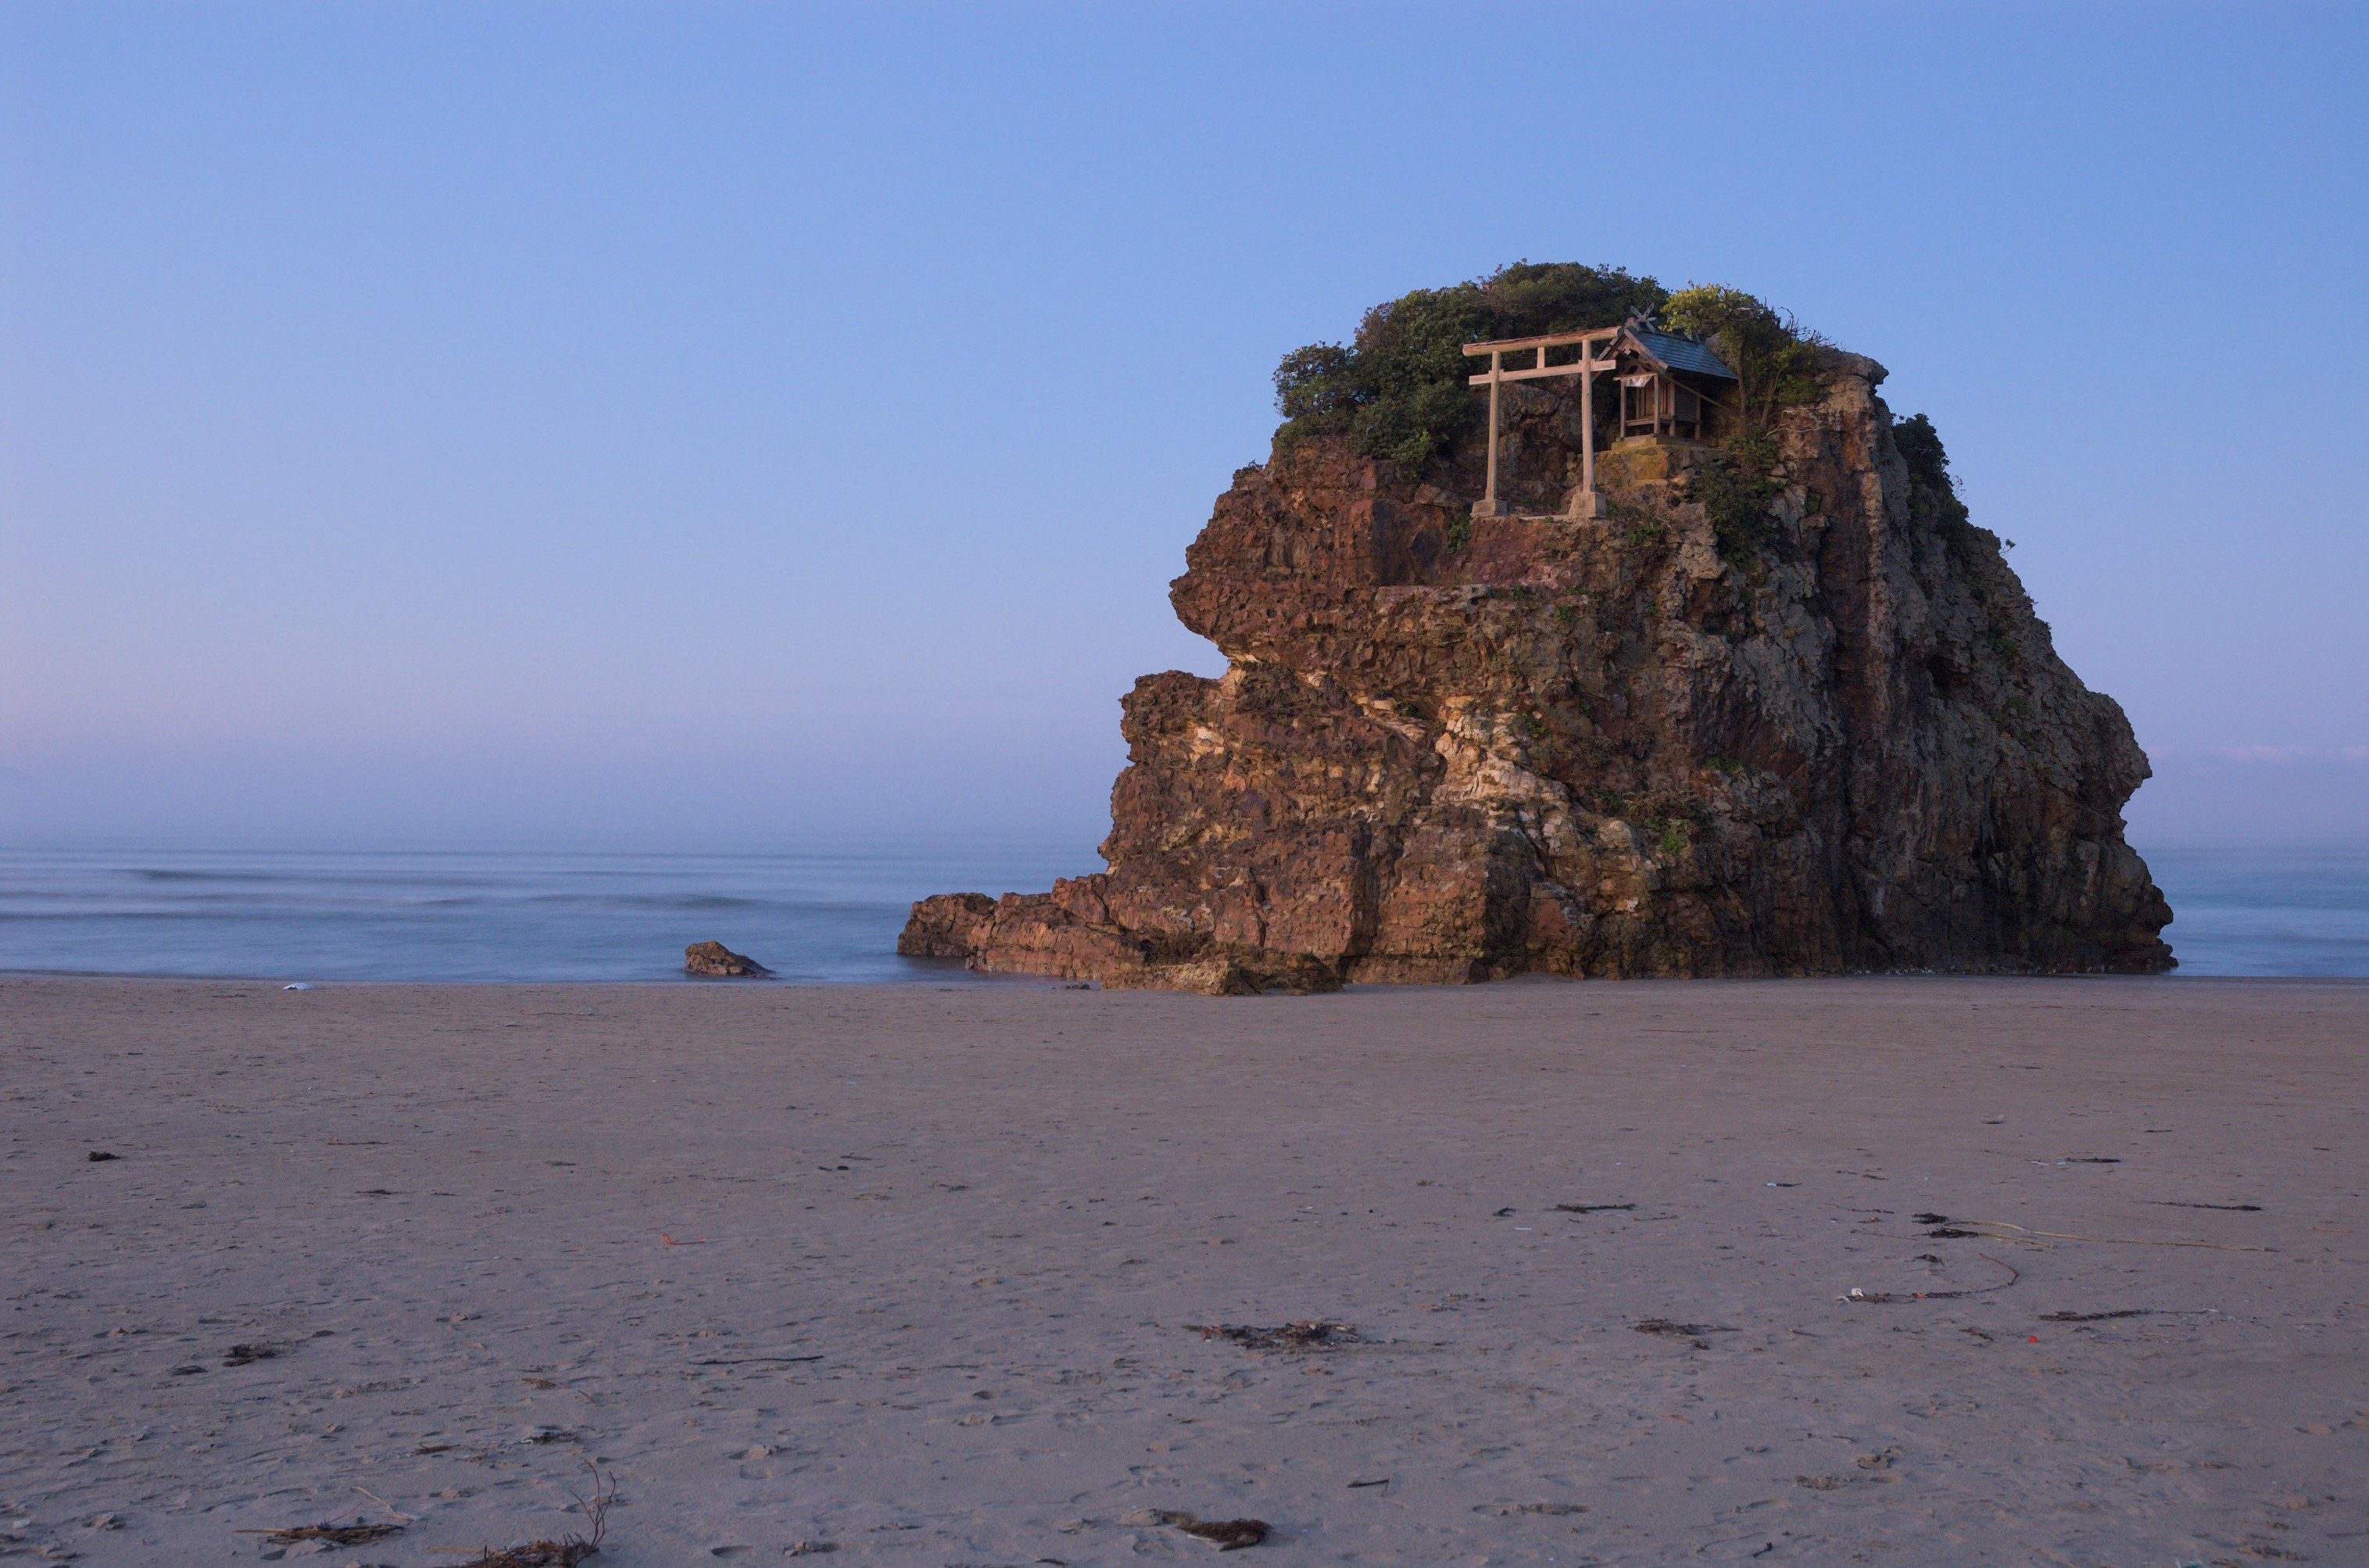 Benten-jima shrine on Inasa beach